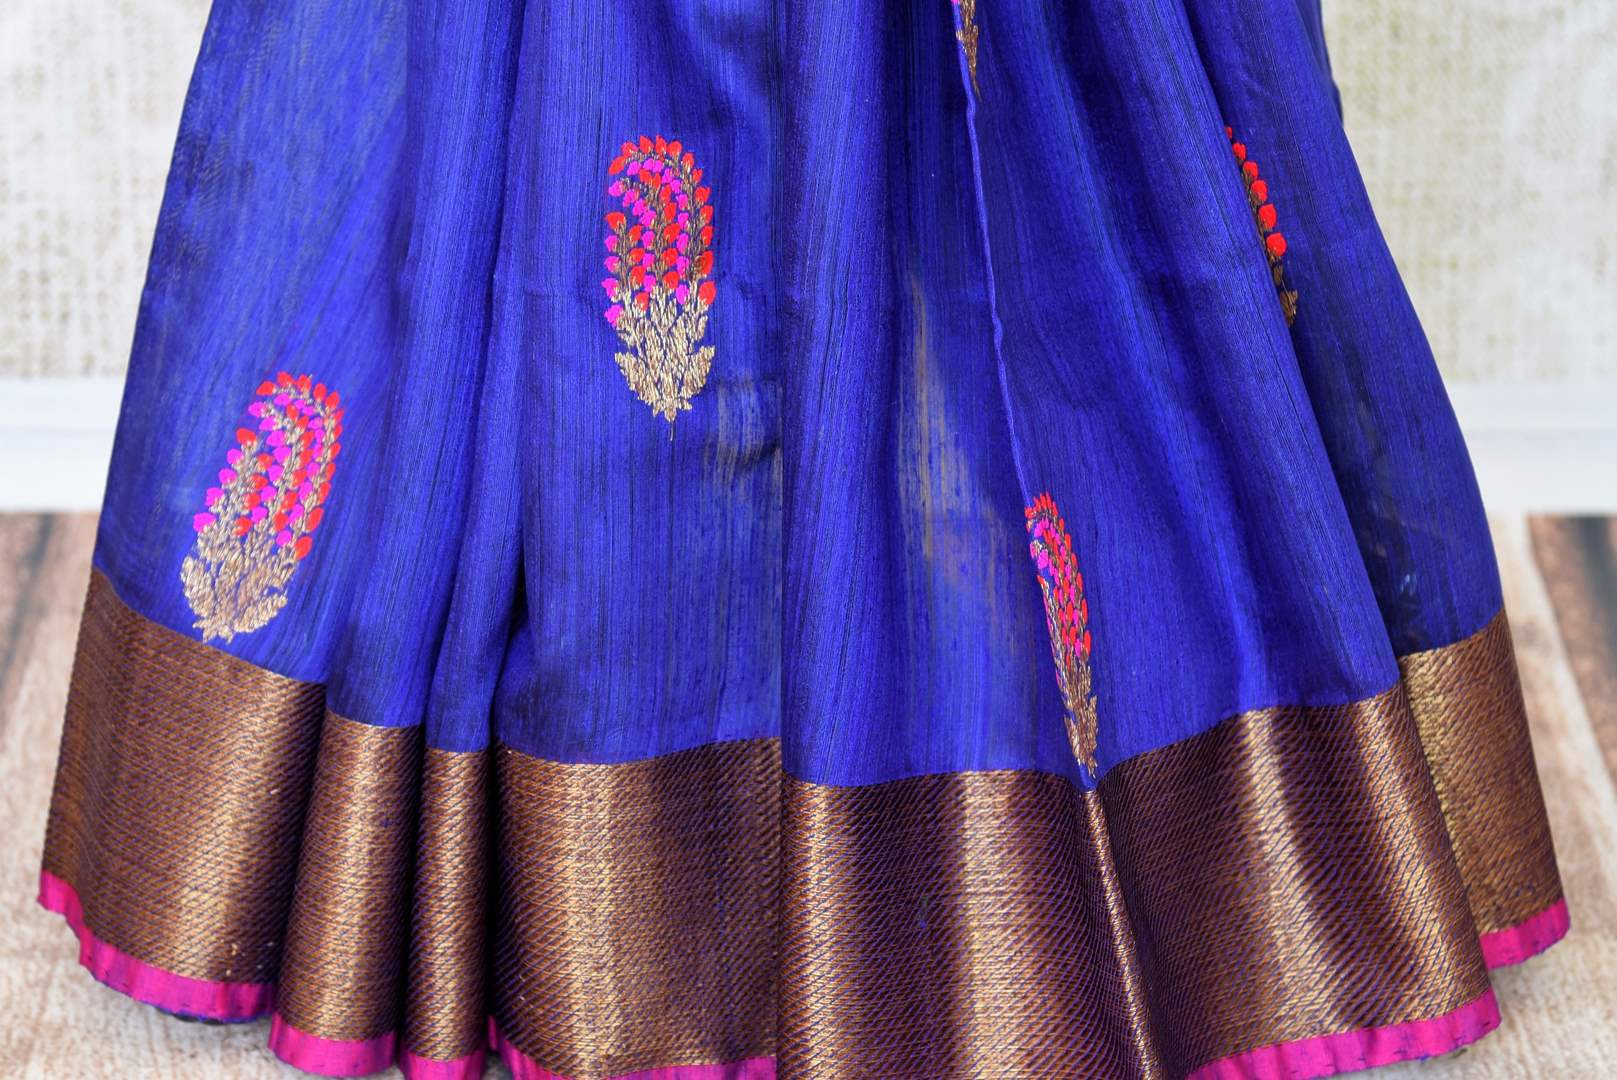 Indulge in this scintillating royal blue matka banarsi silk saree. It comes with a gorgeous zari weave border and contrasting blue zari blouse to create a stunning ensemble. The intricately woven butas all over the sari looks beautiful. Shop designer silk sari, printed saree online or visit Pure Elegance store, USA.-pleats